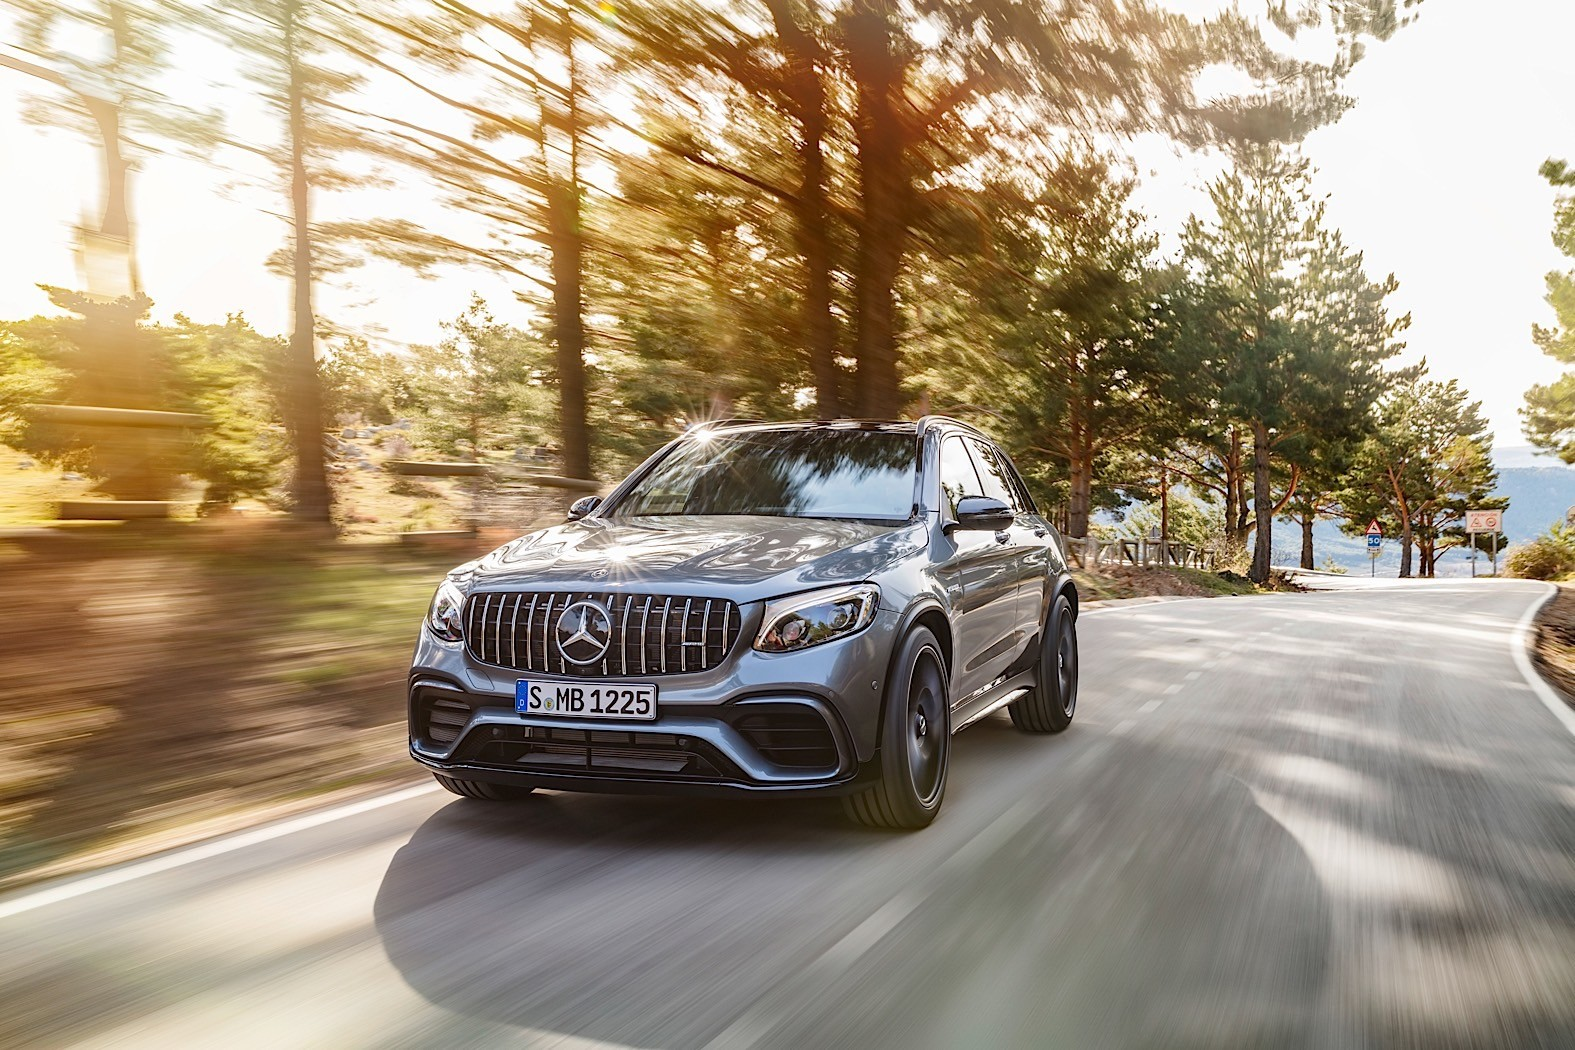 2016 Mercedes GLC 250 d Acceleration Tests and Autobahn Driving